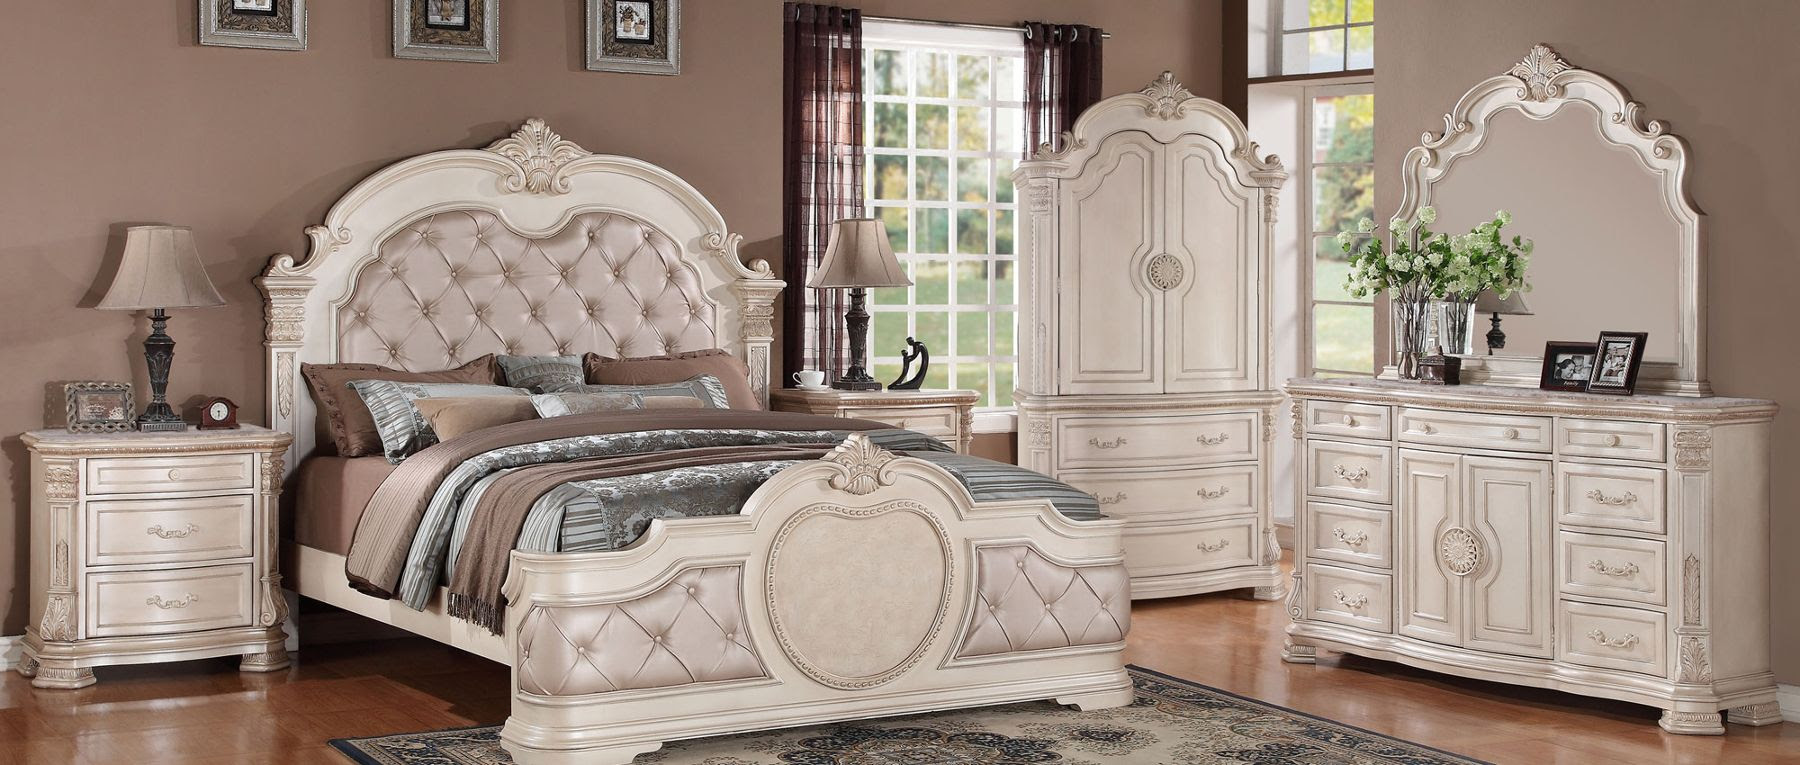 Image result for infinity furniture bed collection